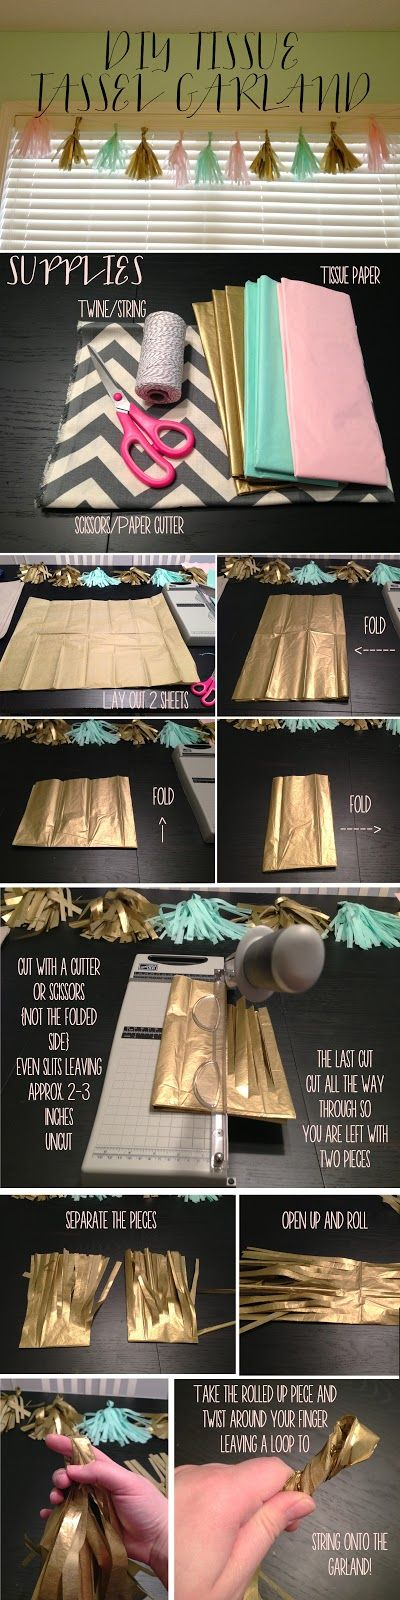 Make your own festive tassel garland with this Designs By Nicola tutorial.